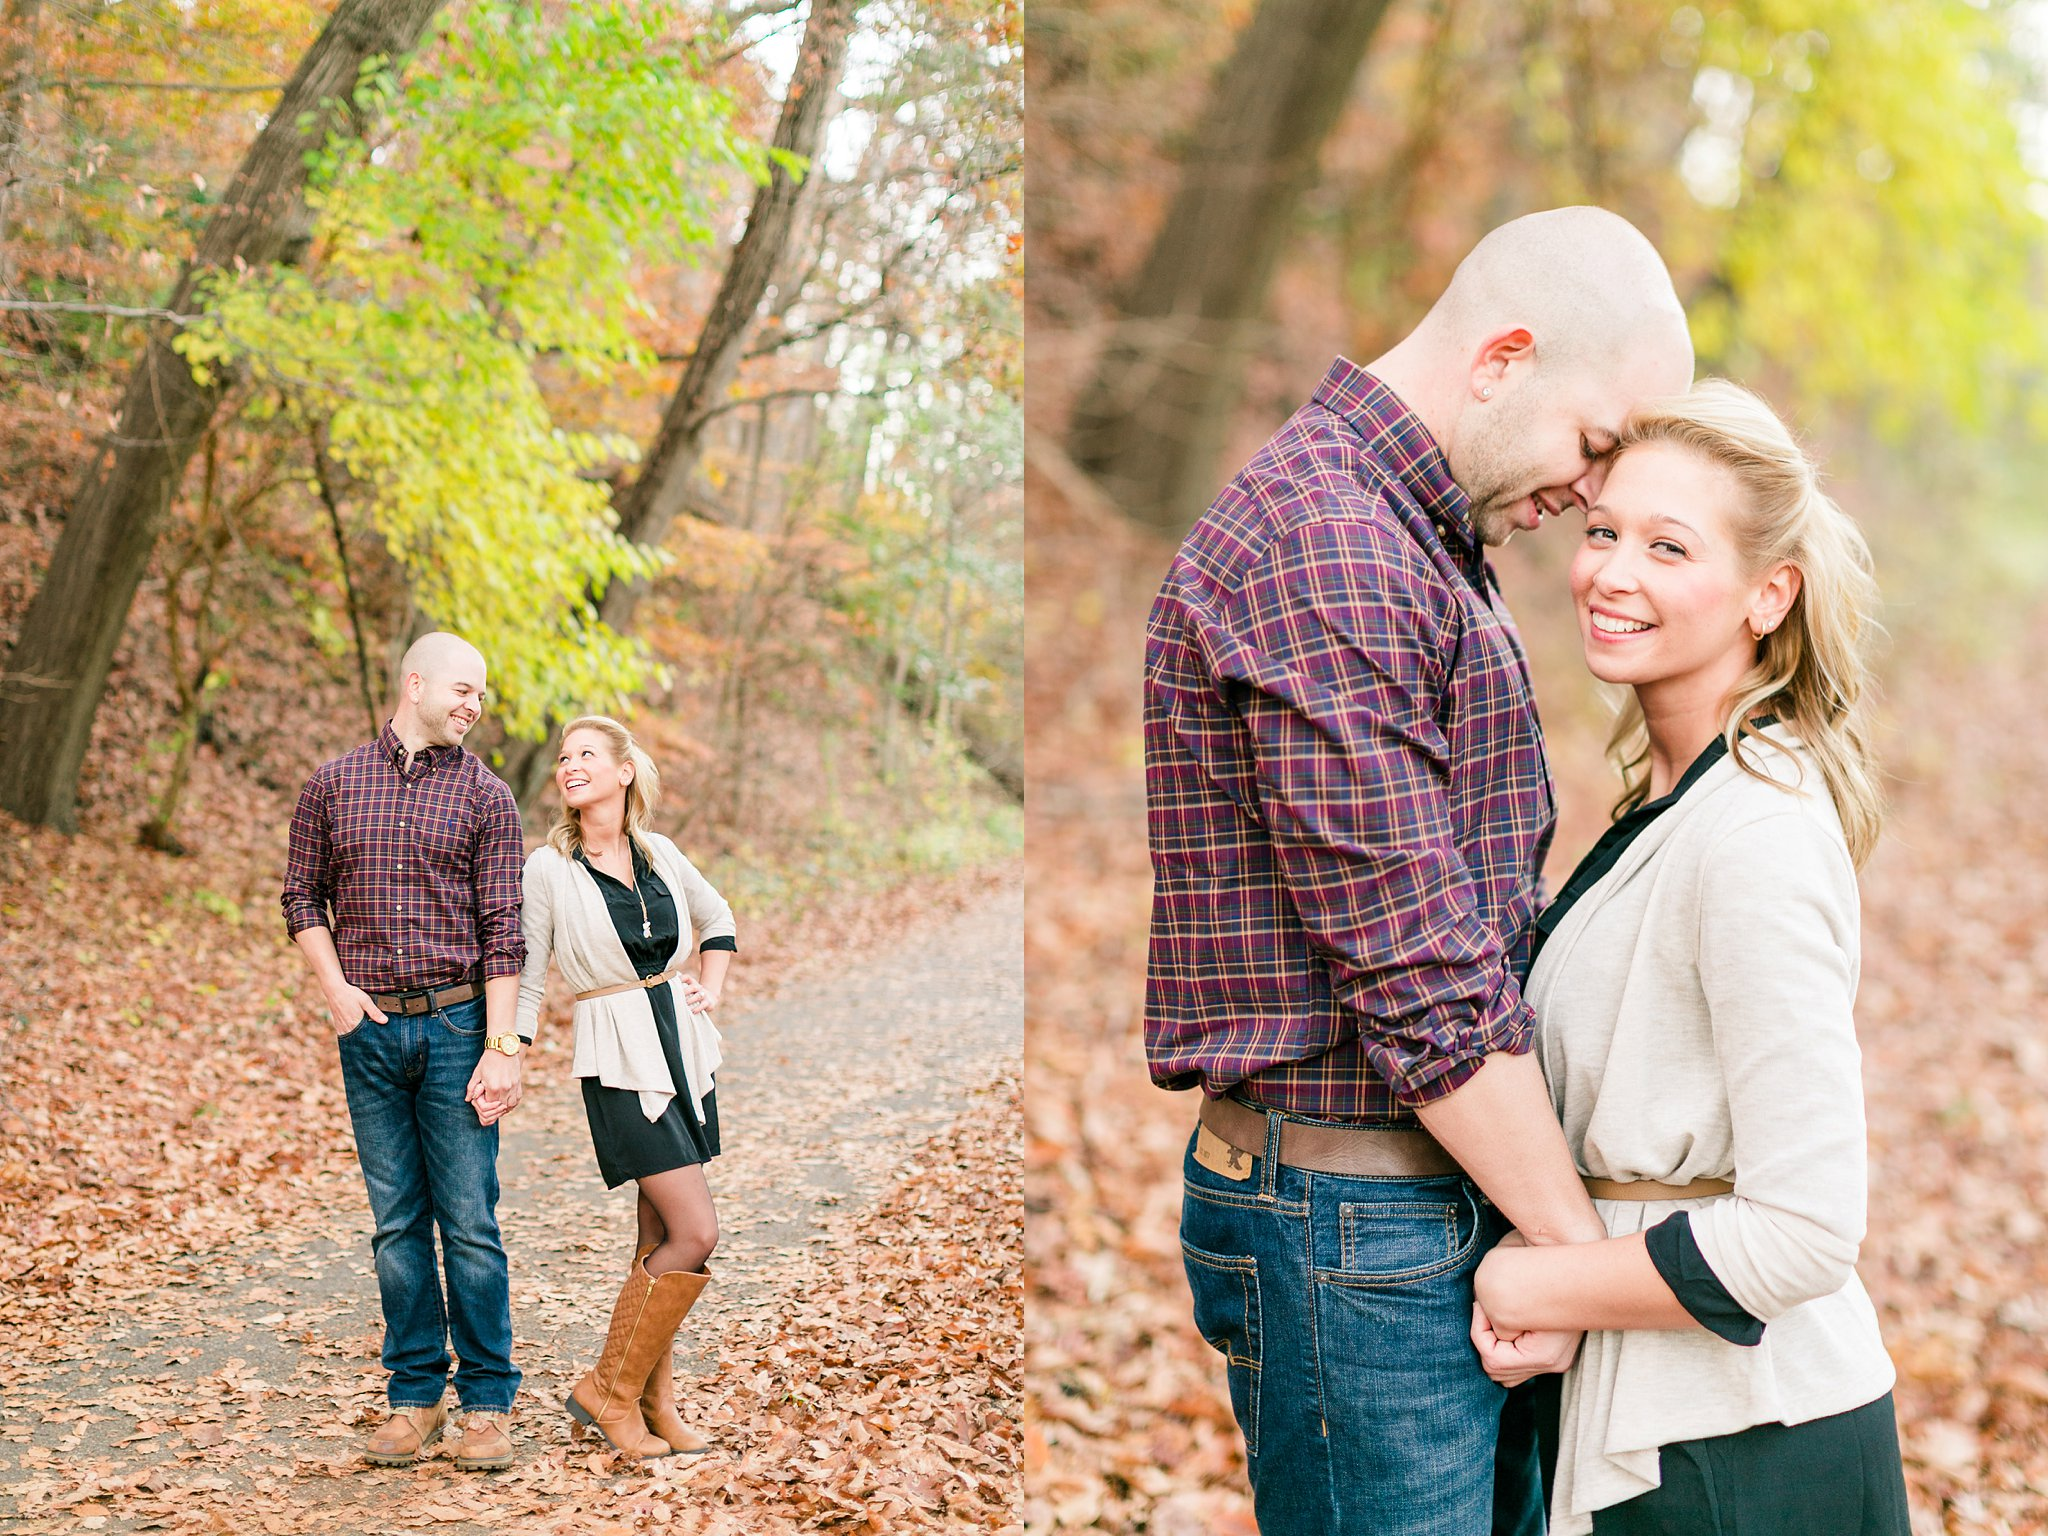 Rock Creek Park Engagement Photos DC Wedding Photographer Megan Kelsey Photography Katie & Conor-167.jpg